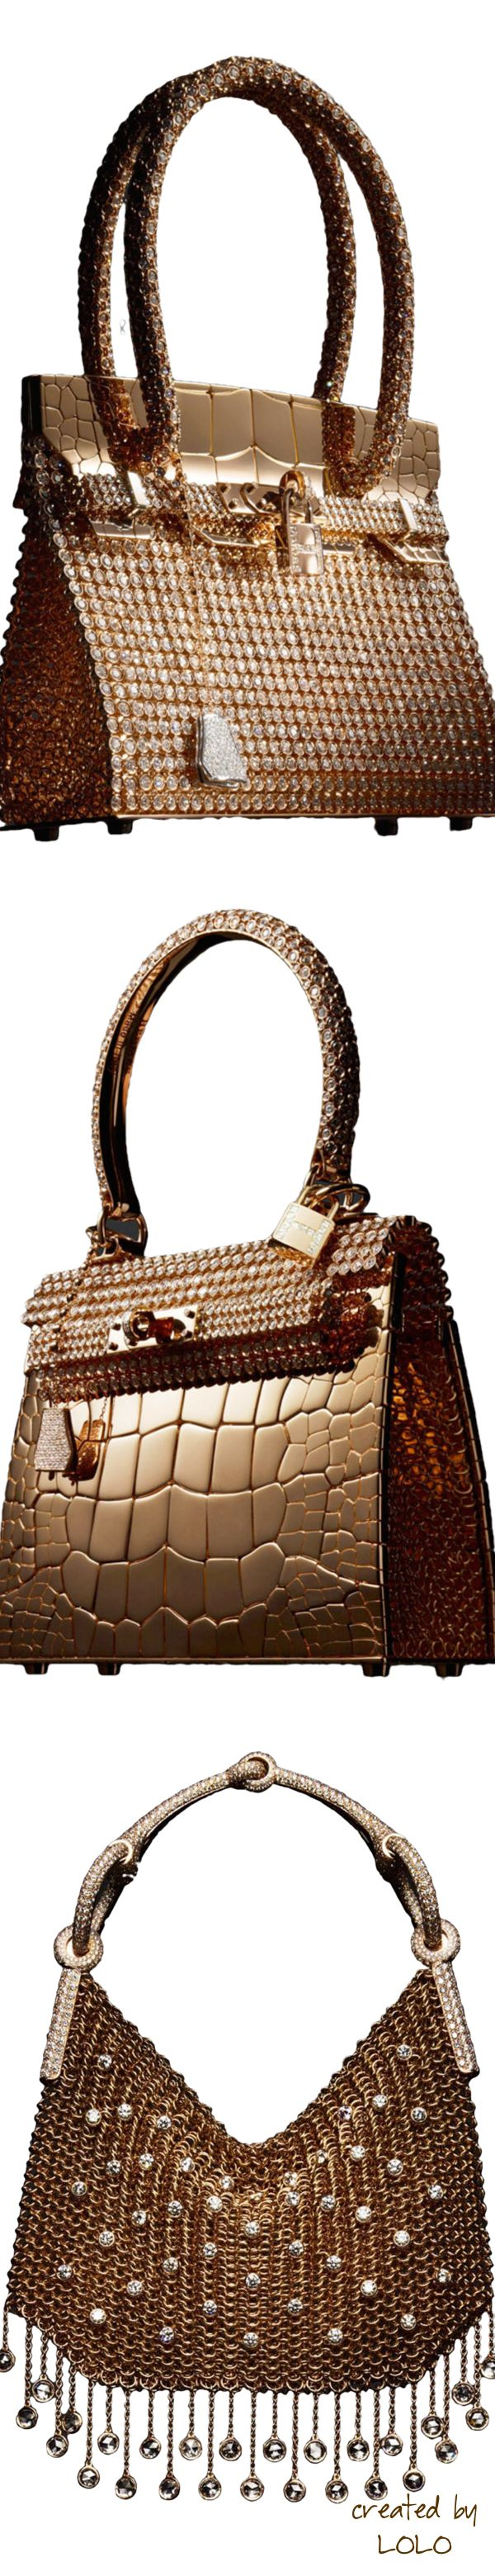 Hermès bags http://hermansfashion.wordpress.com/ http://instagram.com/hermans_style